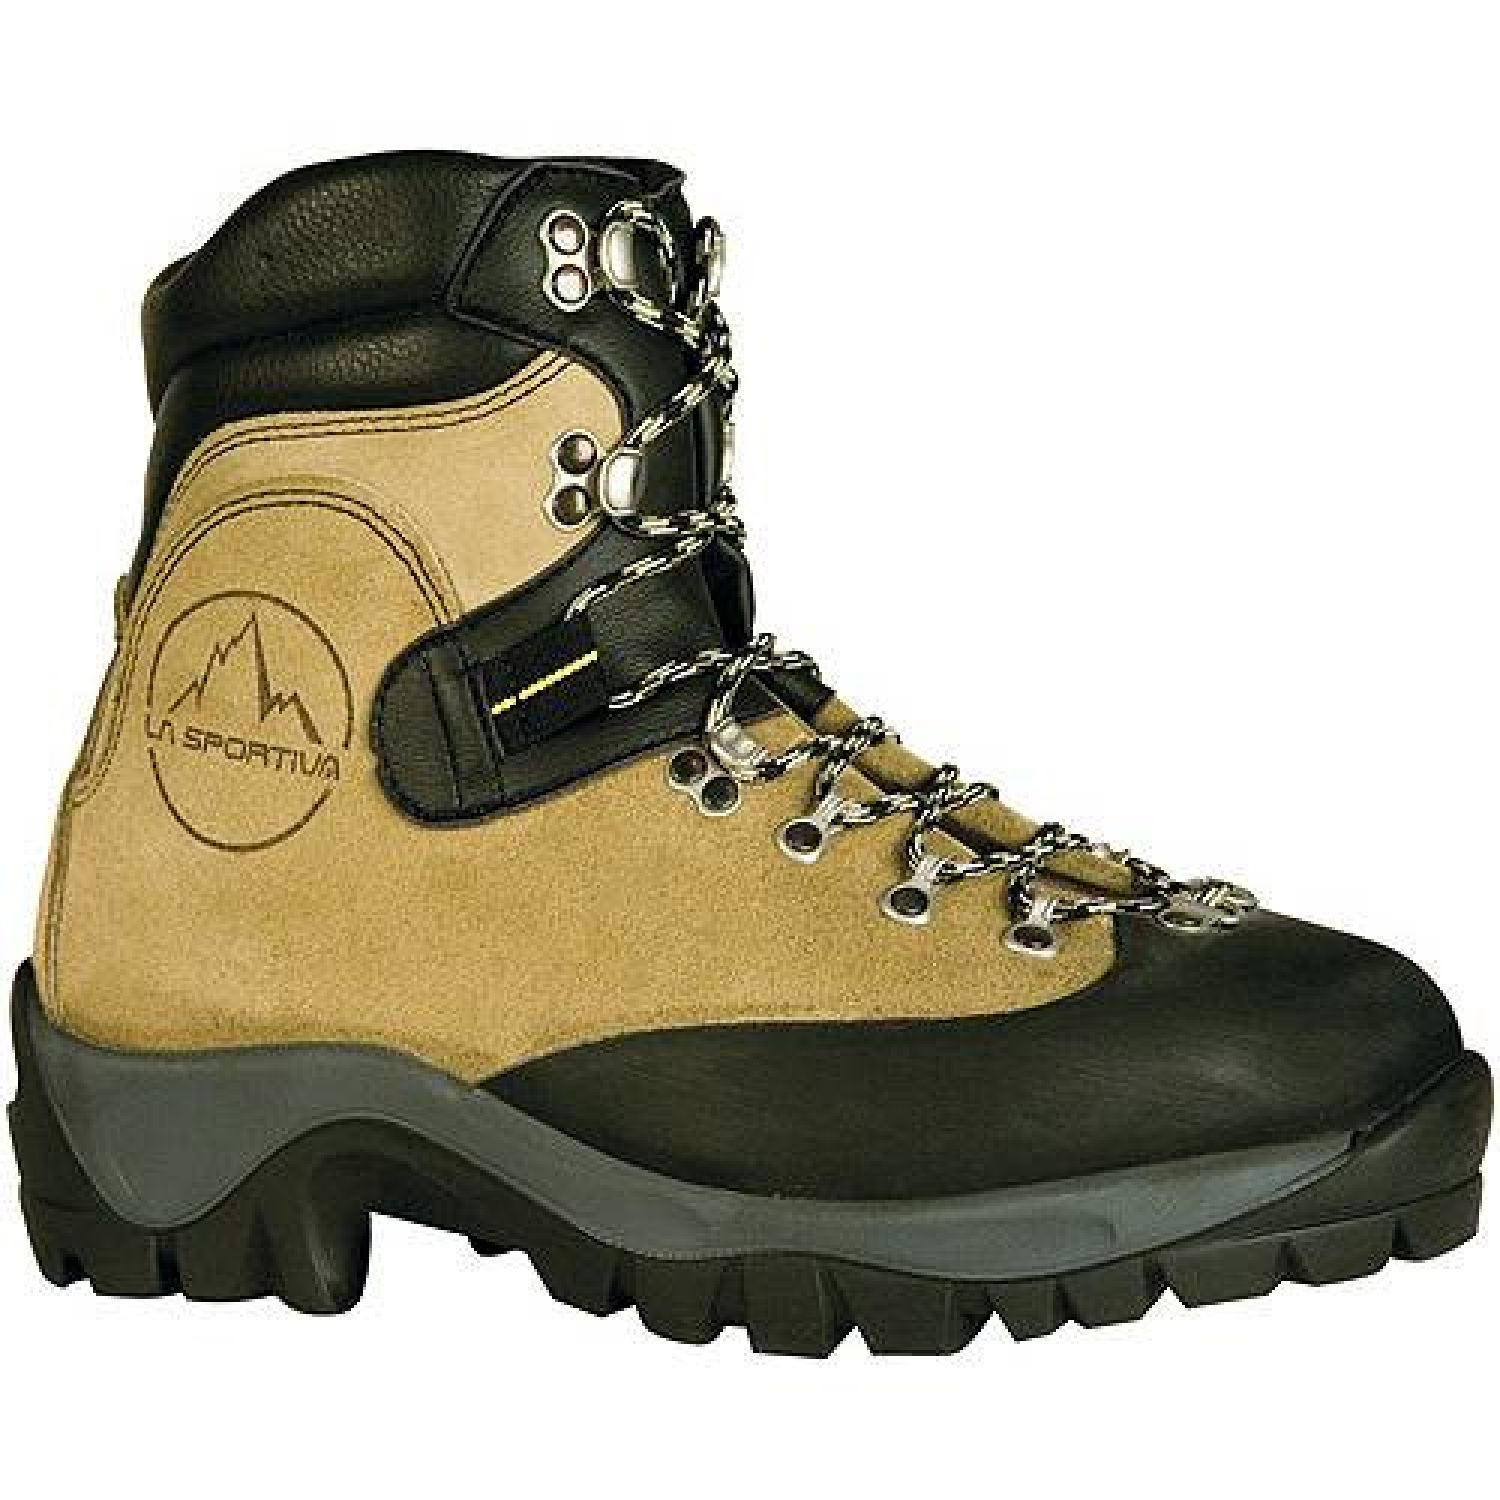 photo: La Sportiva Glacier mountaineering boot